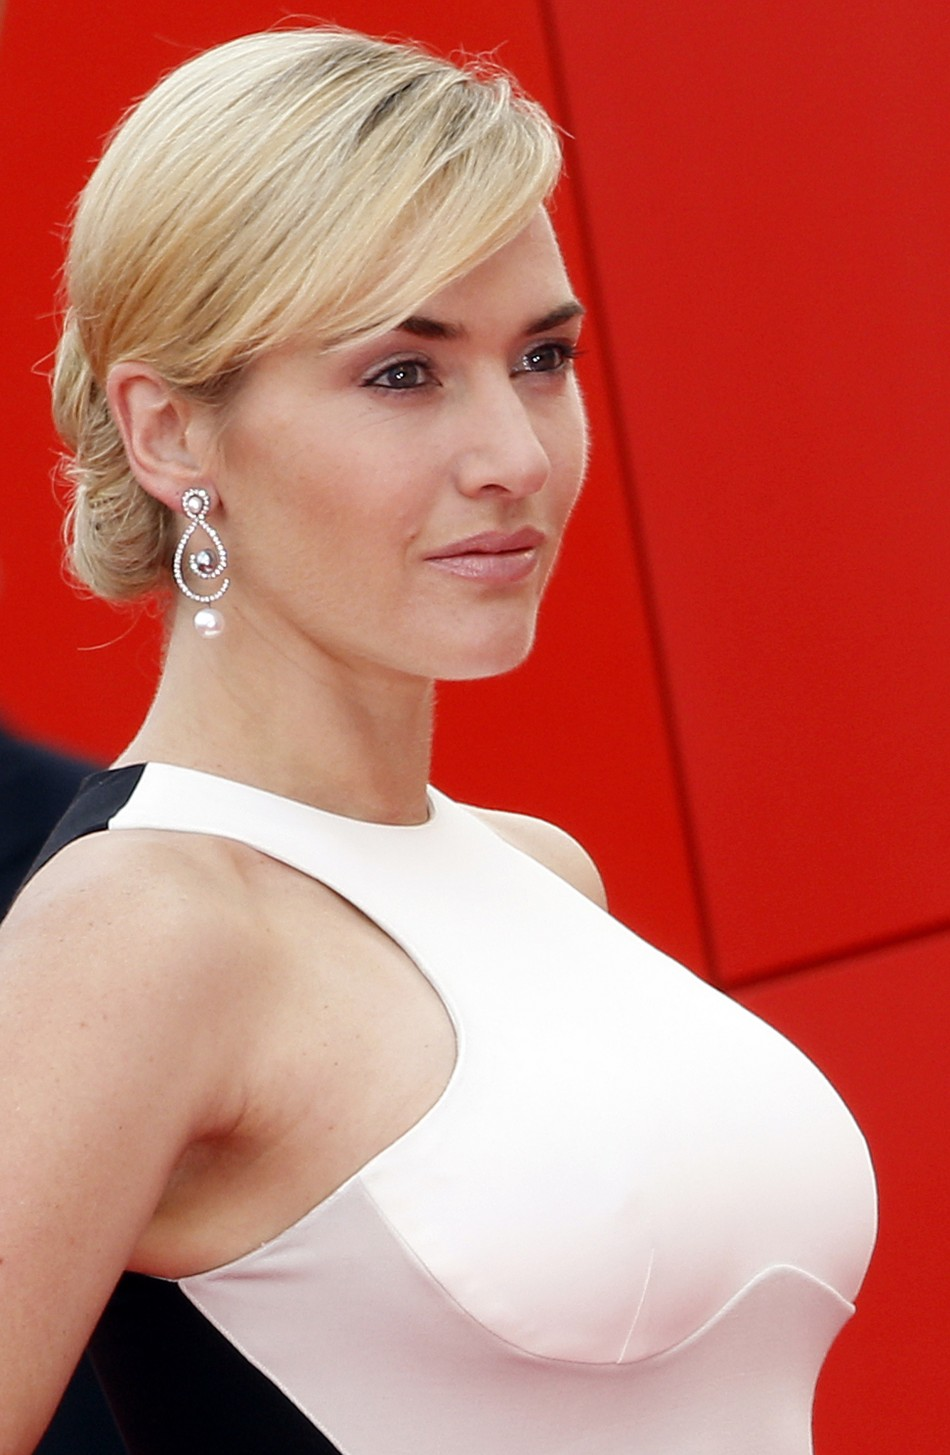 Kate Winslet Sets Red Carpet On Fire With An Optical